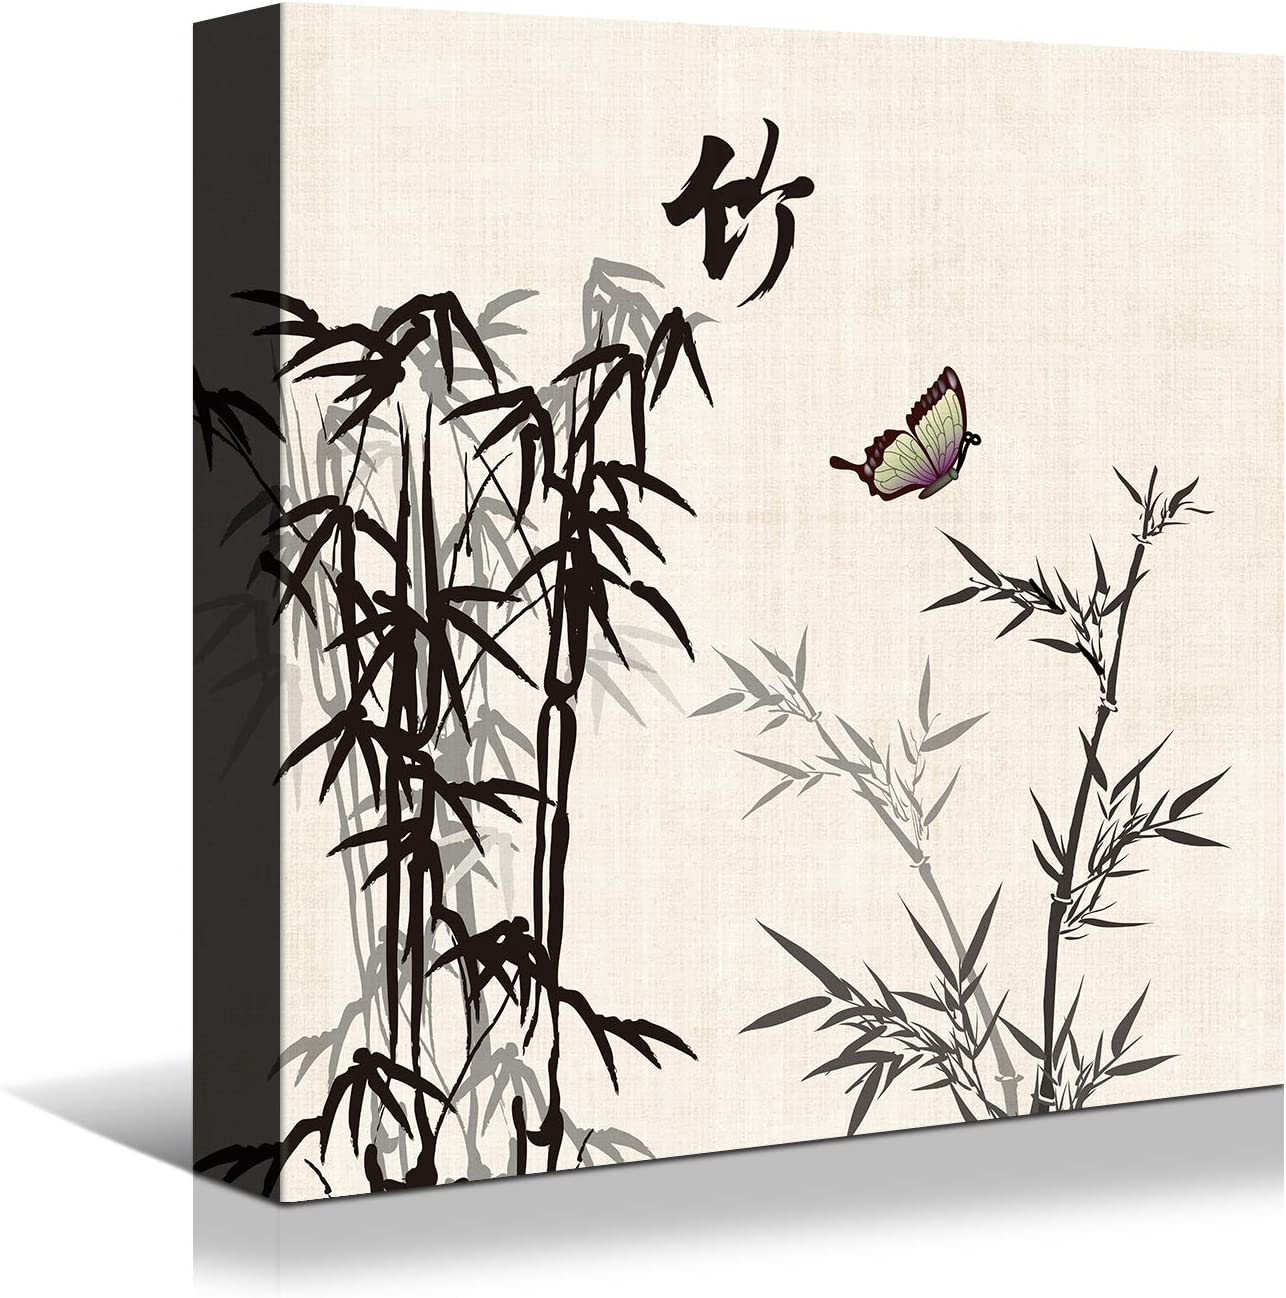 Looife Chinese Culture Canvas Wall Art - Square 12x12 Inch Ink Painting of Black Bamboo Flower Picture Artwork Giclee Prints Wall Decor, Modern Galeery Wrapped Art Deco for Home Decoration